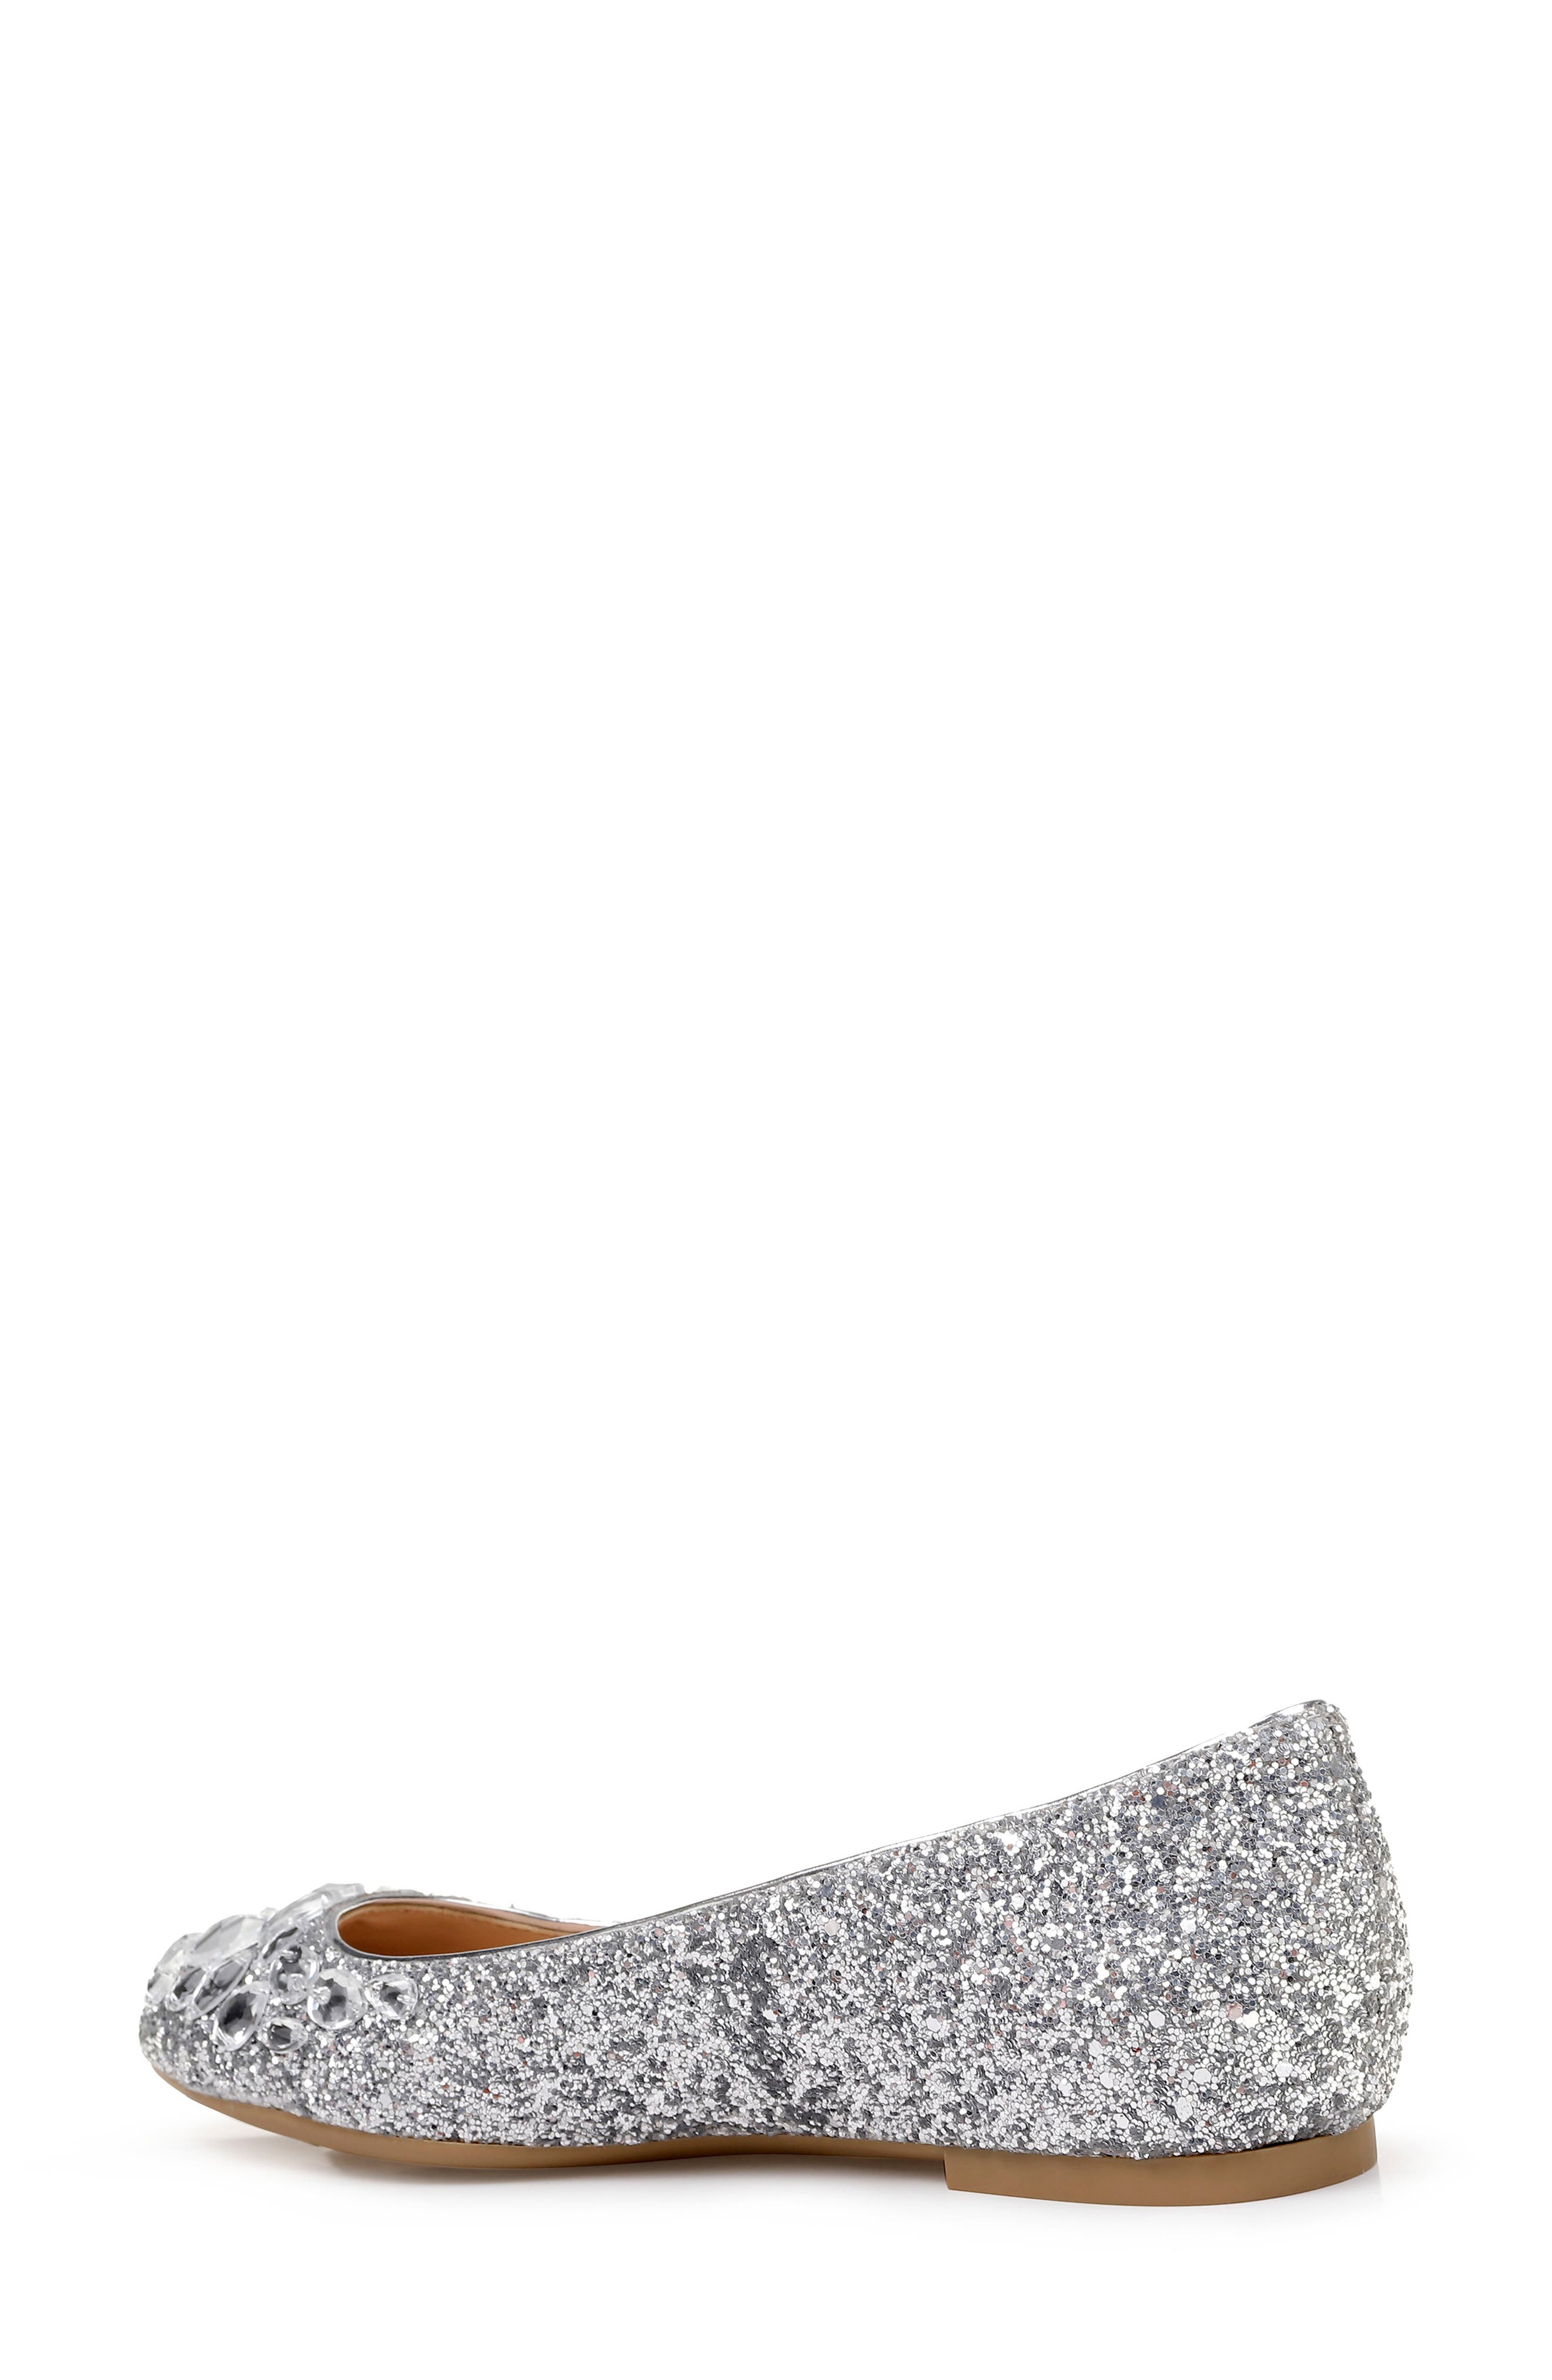 JEWEL BADGLEY MISCHKA, Mathilda Embellished Ballet Flat, Alternate thumbnail 2, color, SILVER GLITTER